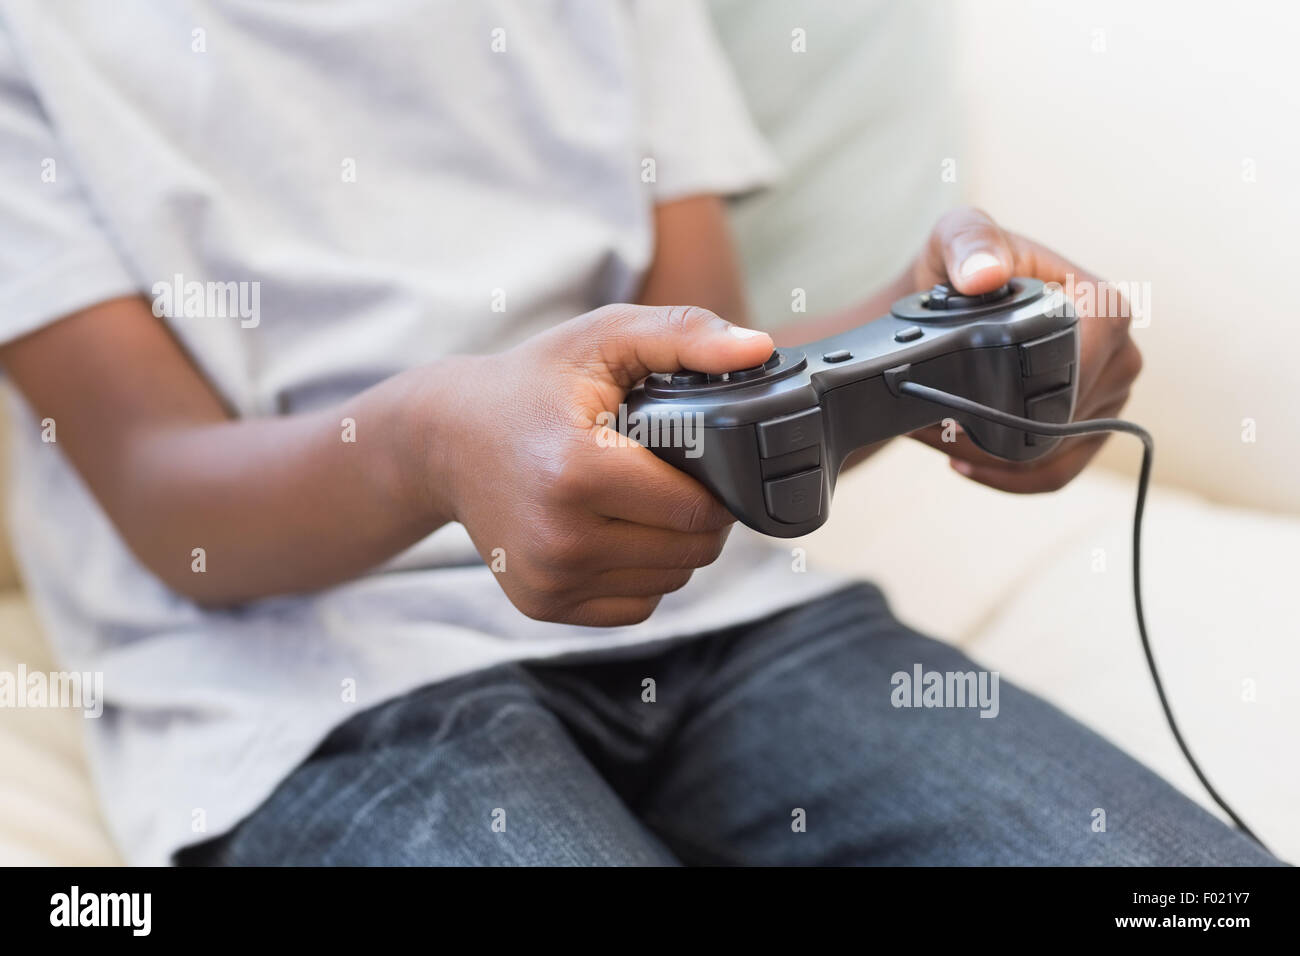 Little boy playing video games Photo Stock